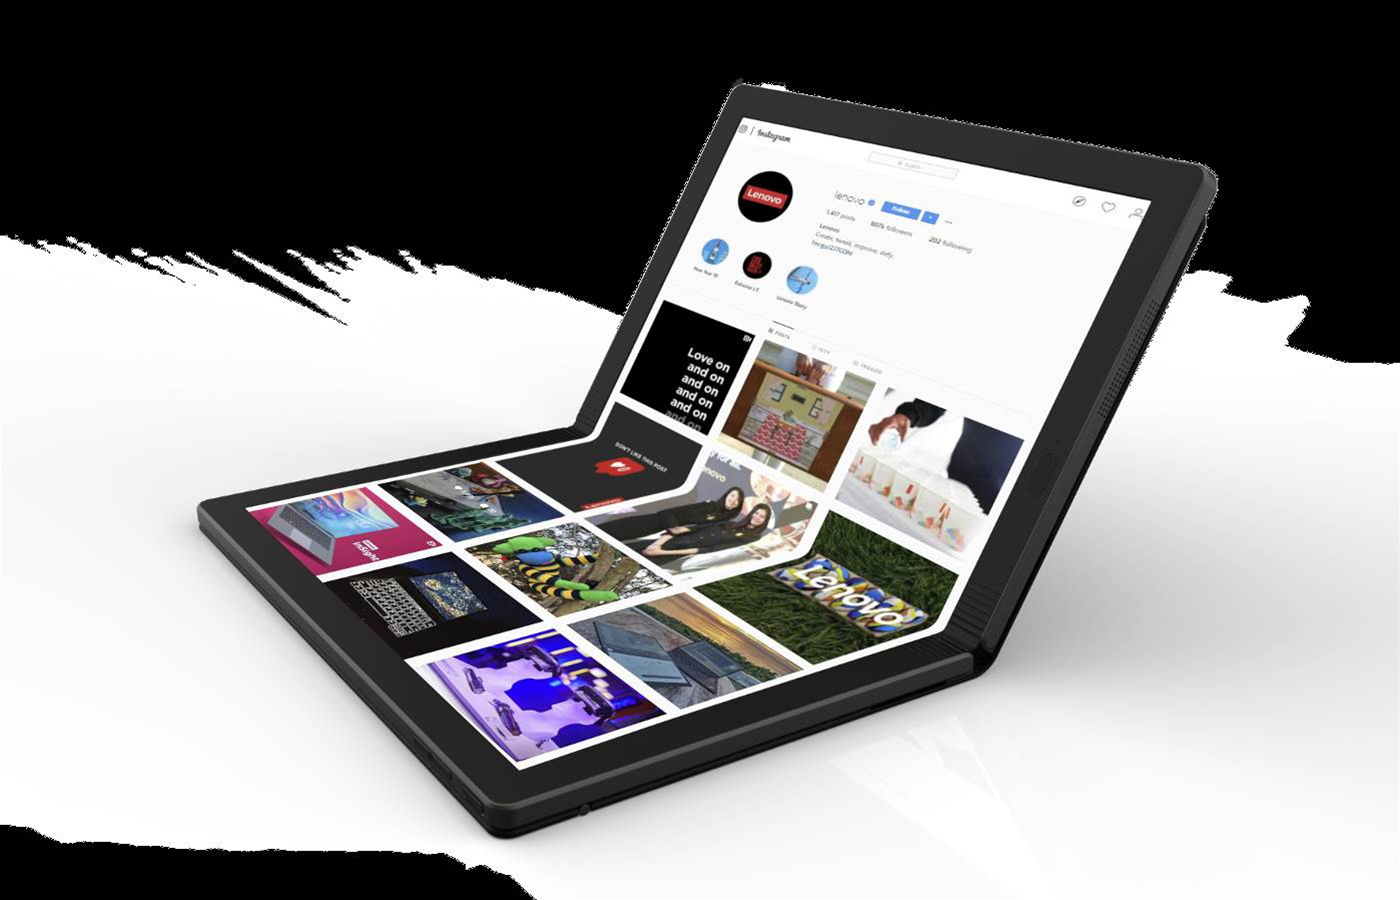 Lenovo unveils ThinkPad with foldable screen